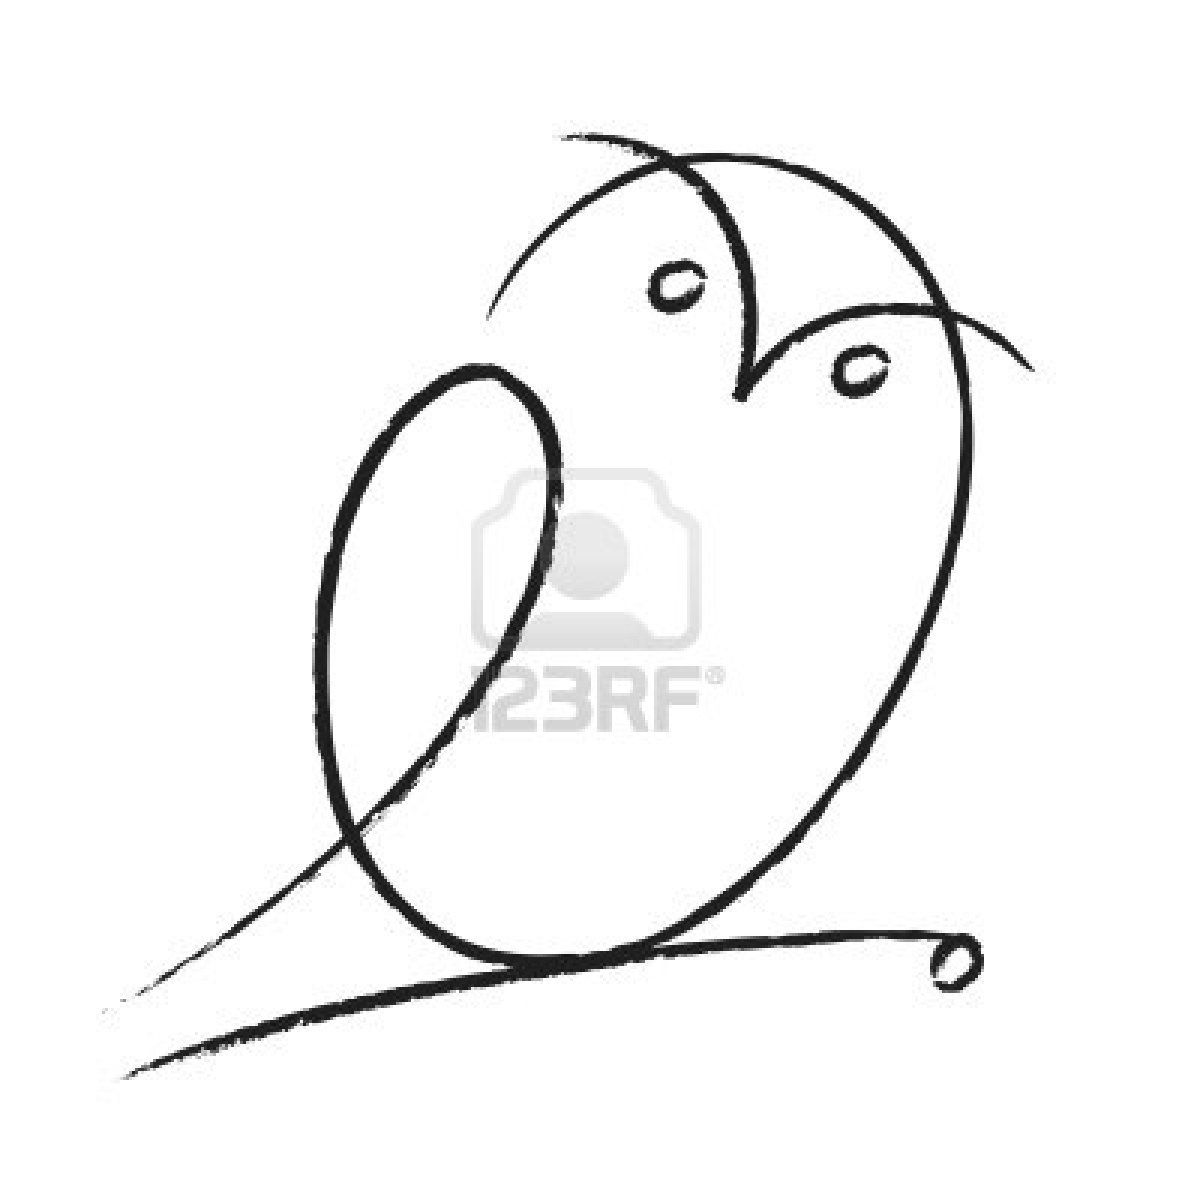 Owl tattoo idea my favorite animal for Small art drawings